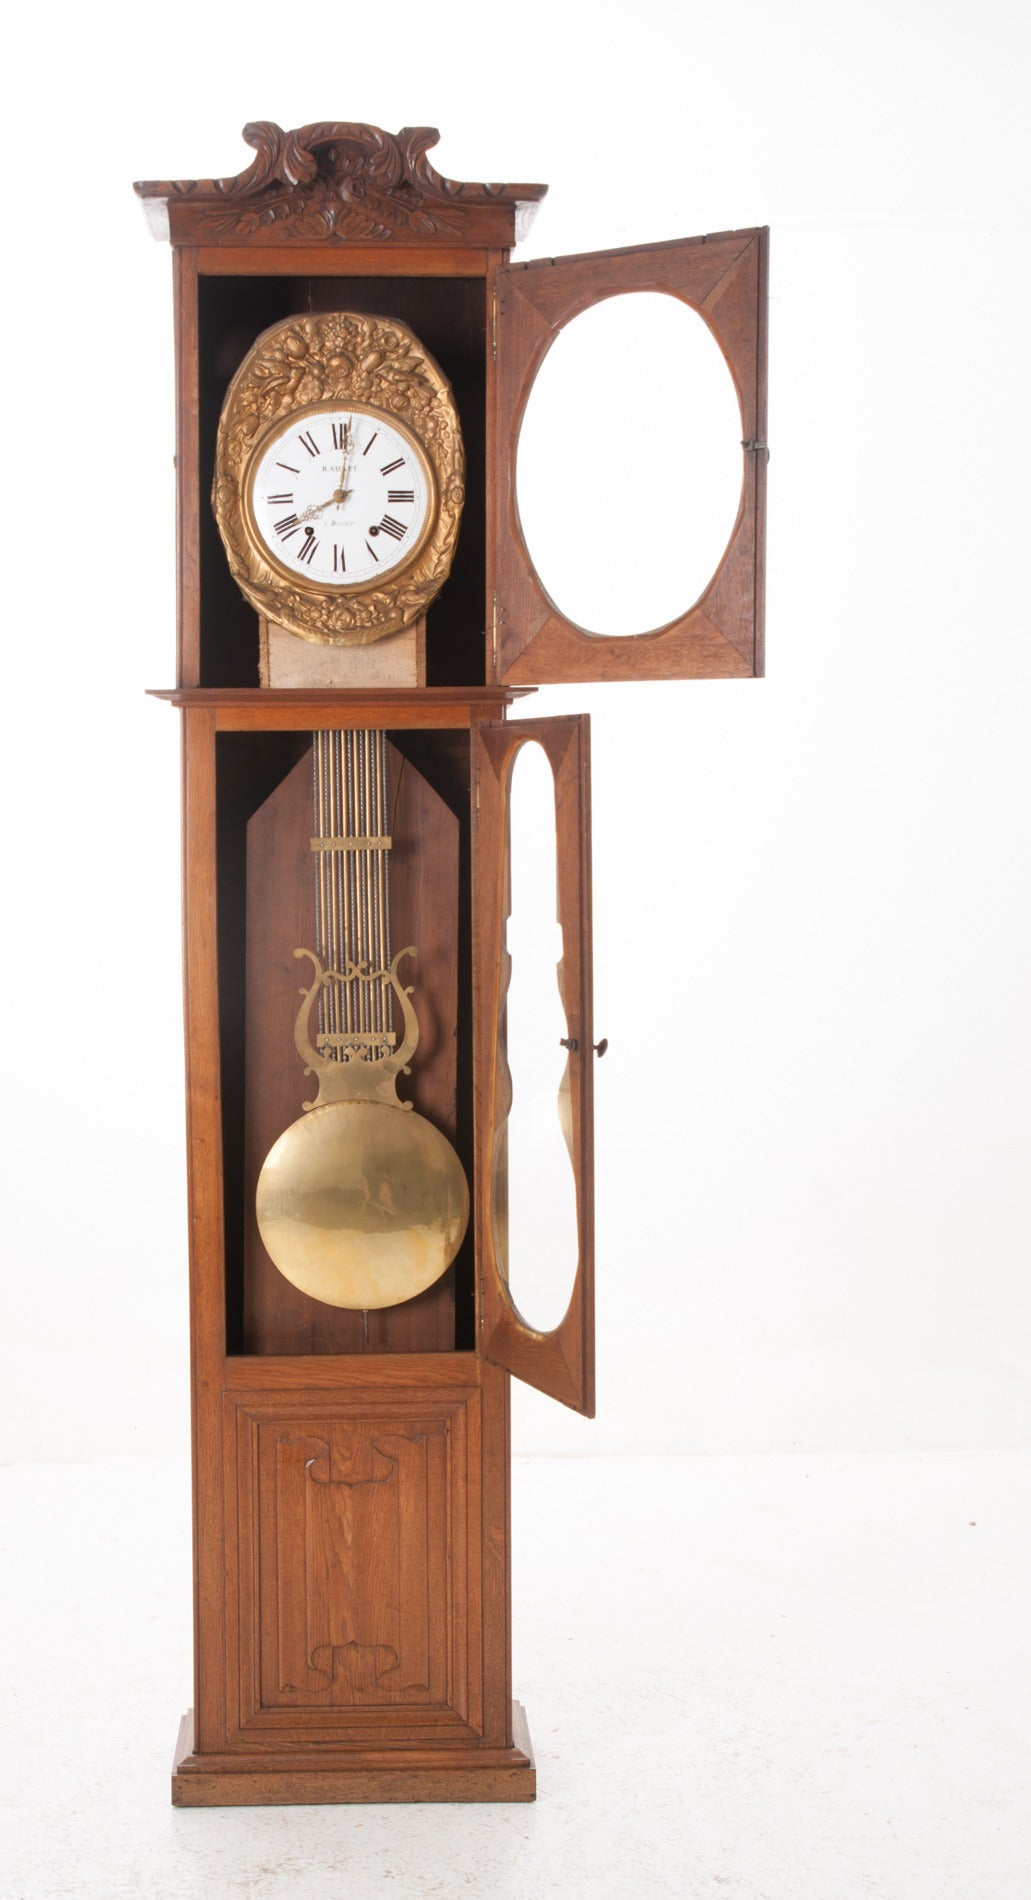 Outstanding French case clock in solid oak. This stunning case clock would add beauty to any room! Please see photos for more detail, circa 1880s The fine clock has all it's working parts, is cleaned and in working order.